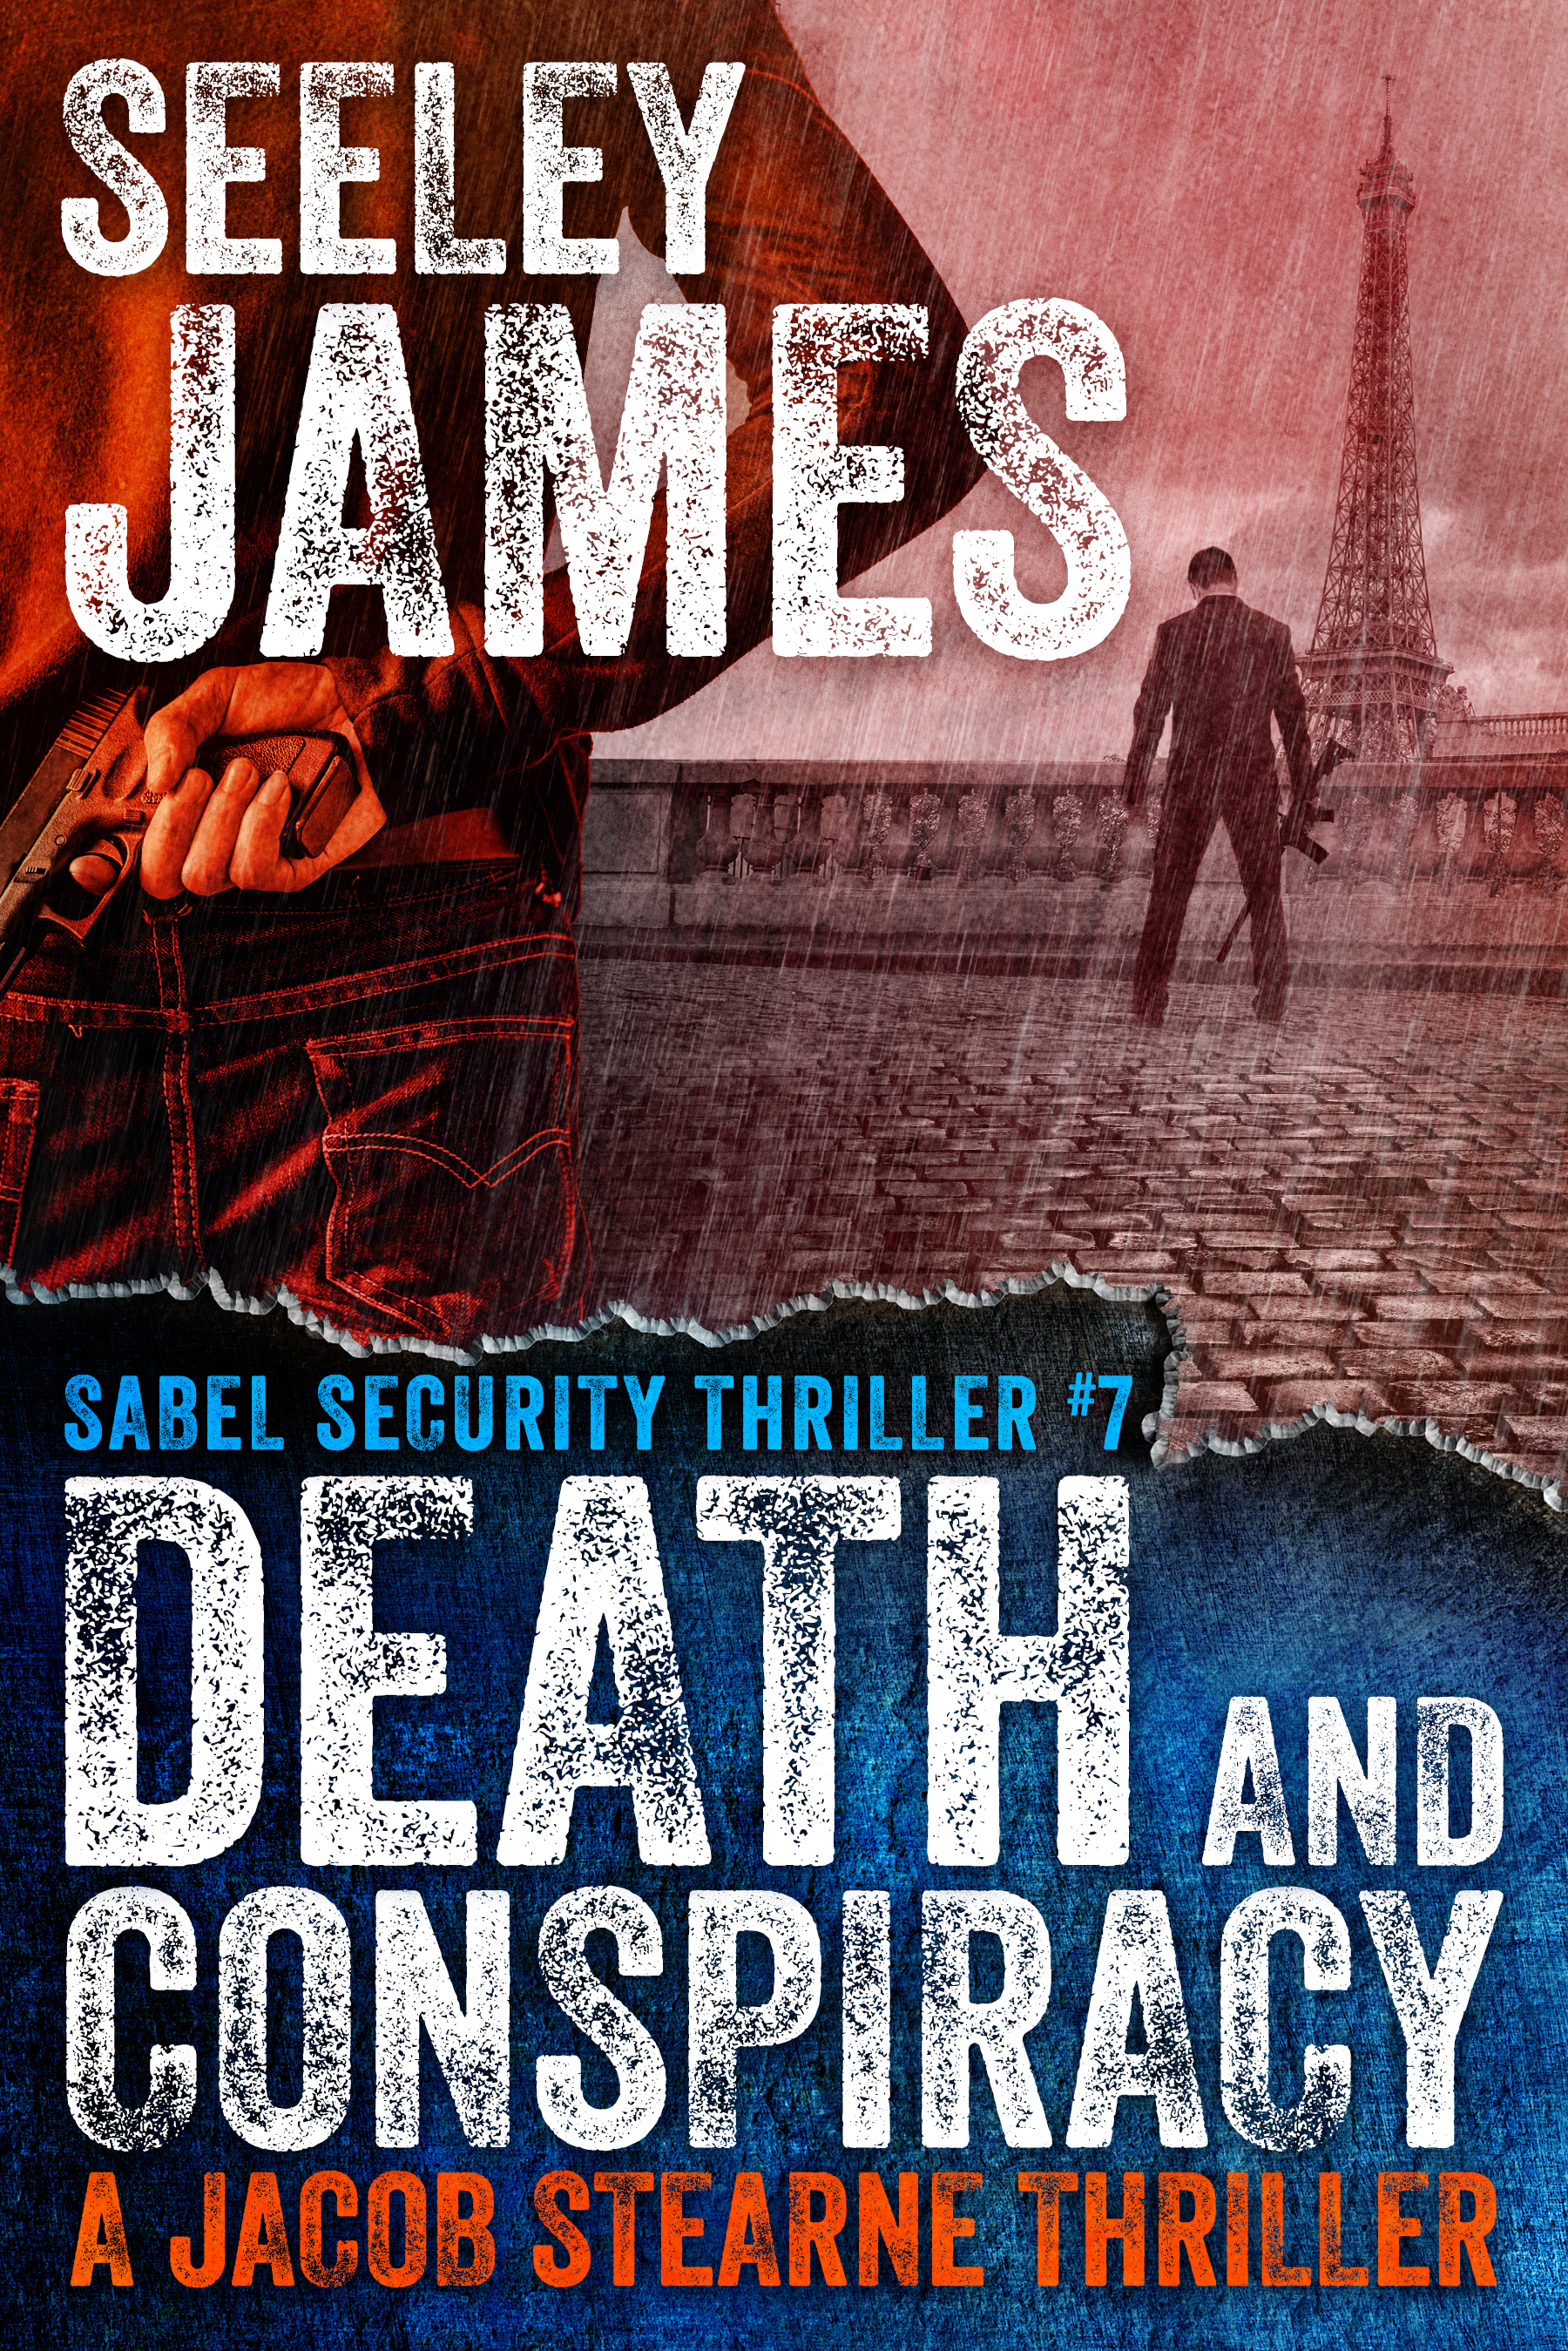 Death and Conspiracy by Seeley James